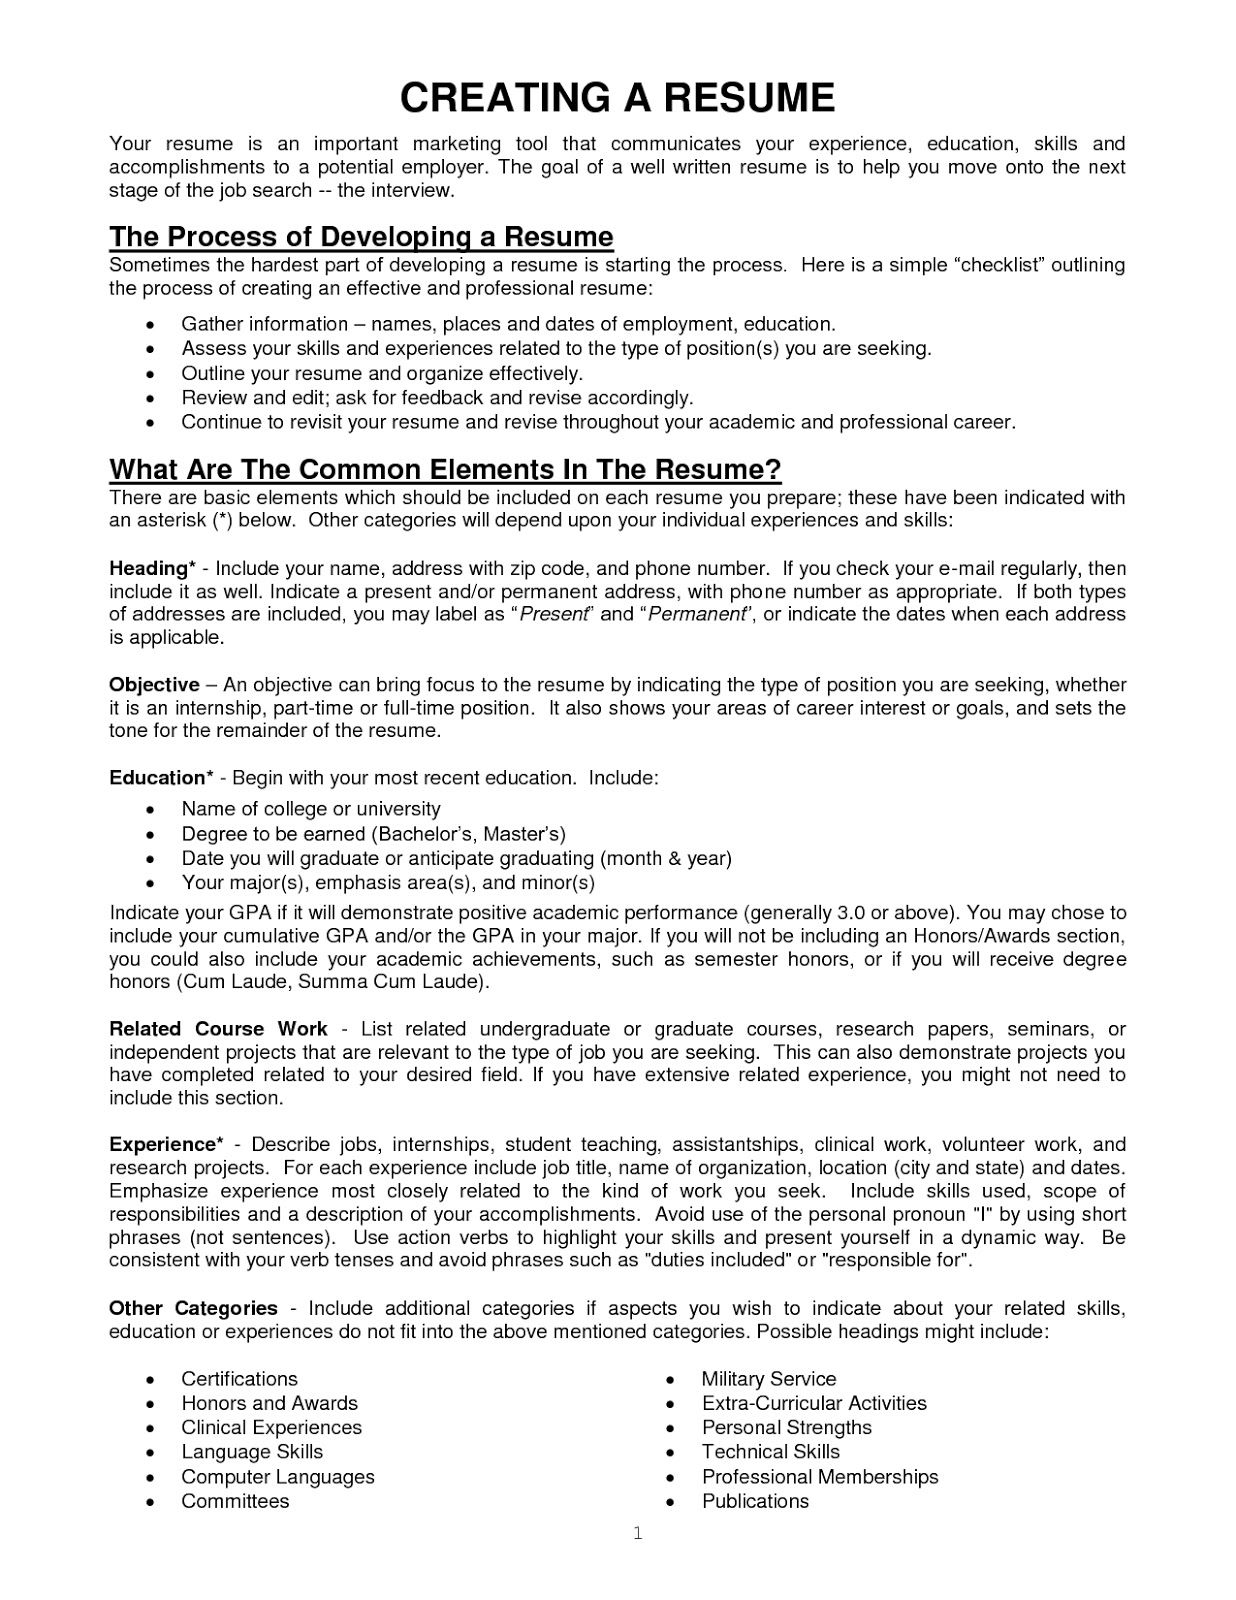 Resume Format Checker Resume writing examples, Reference